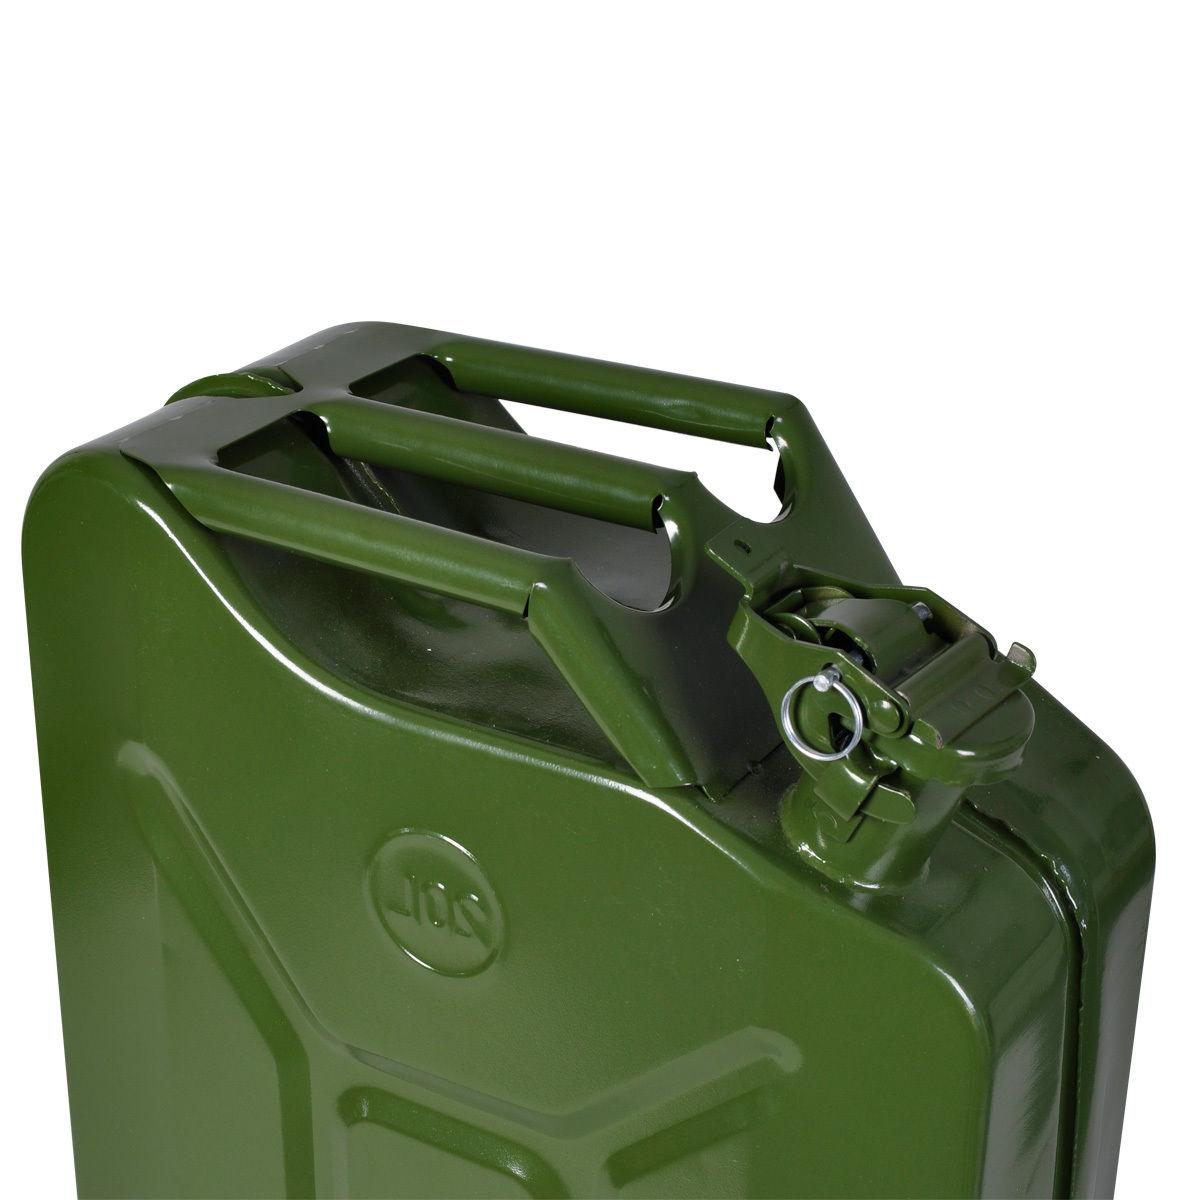 Jerry 5 20L Steel Tank Backup Military